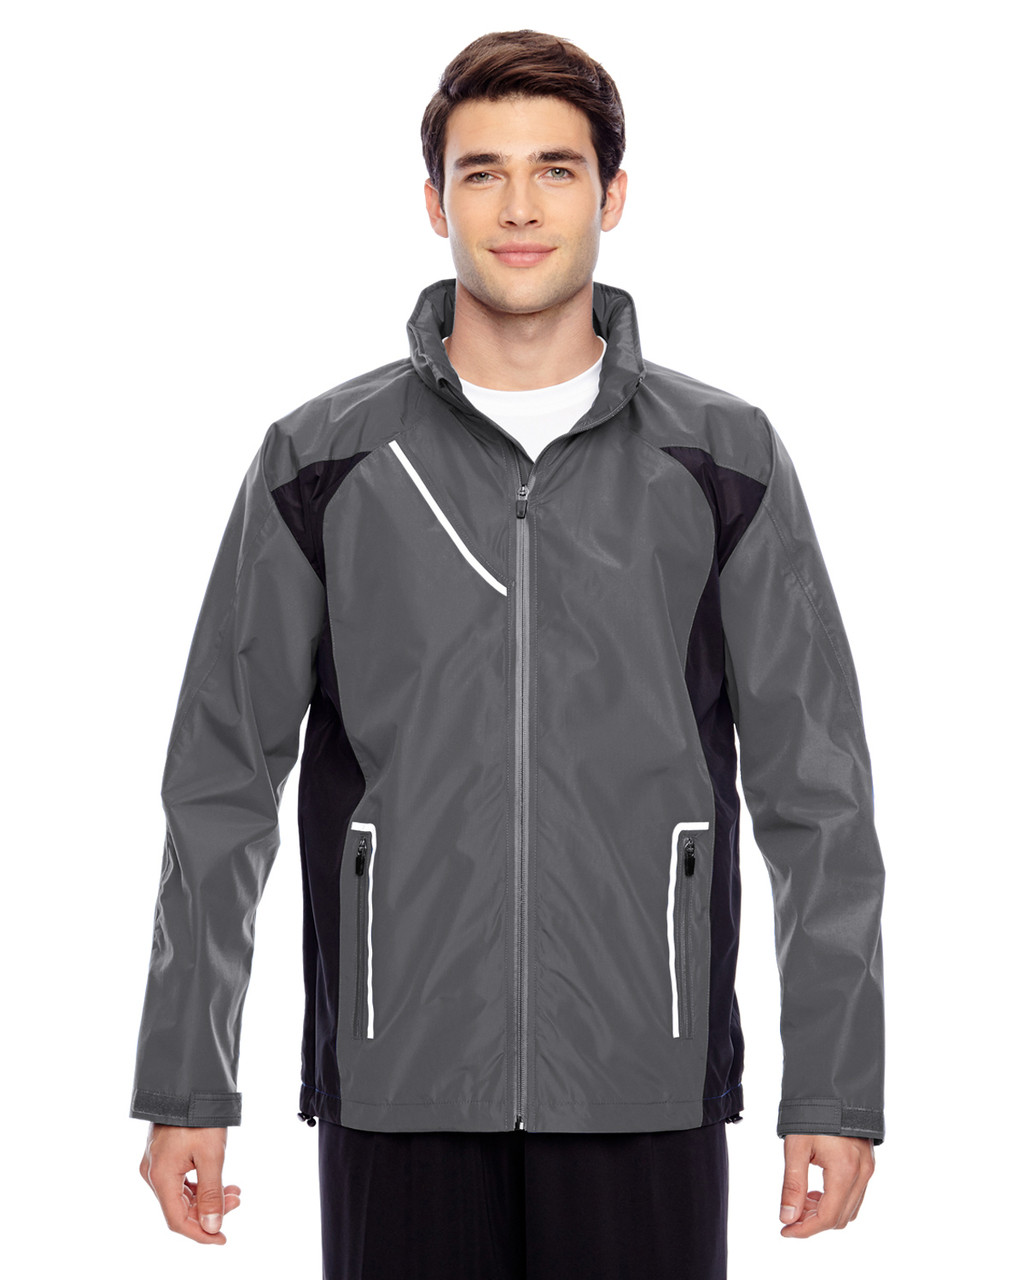 Sport Graphite - TT86 Team 365 Dominator Waterproof Jacket | BlankClothing.ca